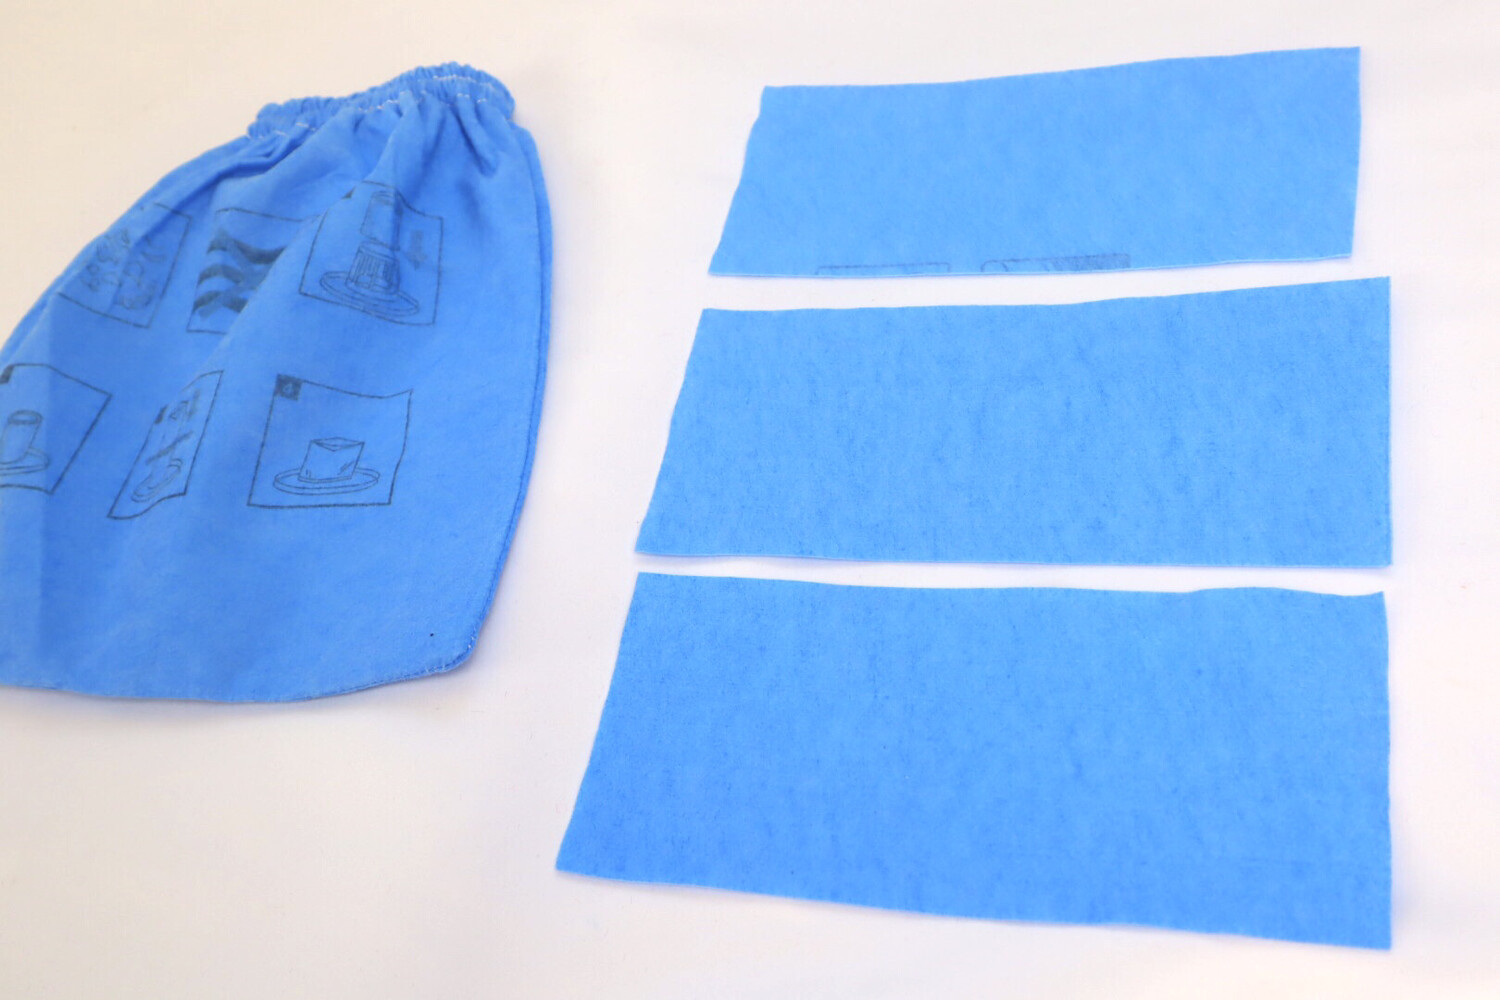 Set of 3 Reusable & Washable Mask Filters - Vacmaster Cloth Filter